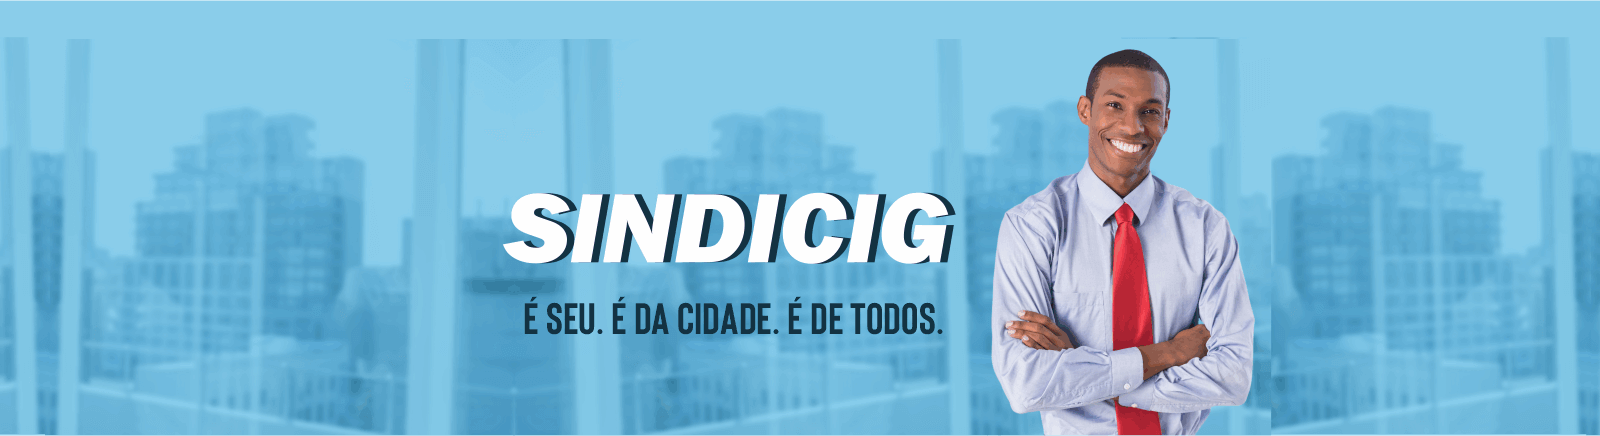 sindicig-banner-home